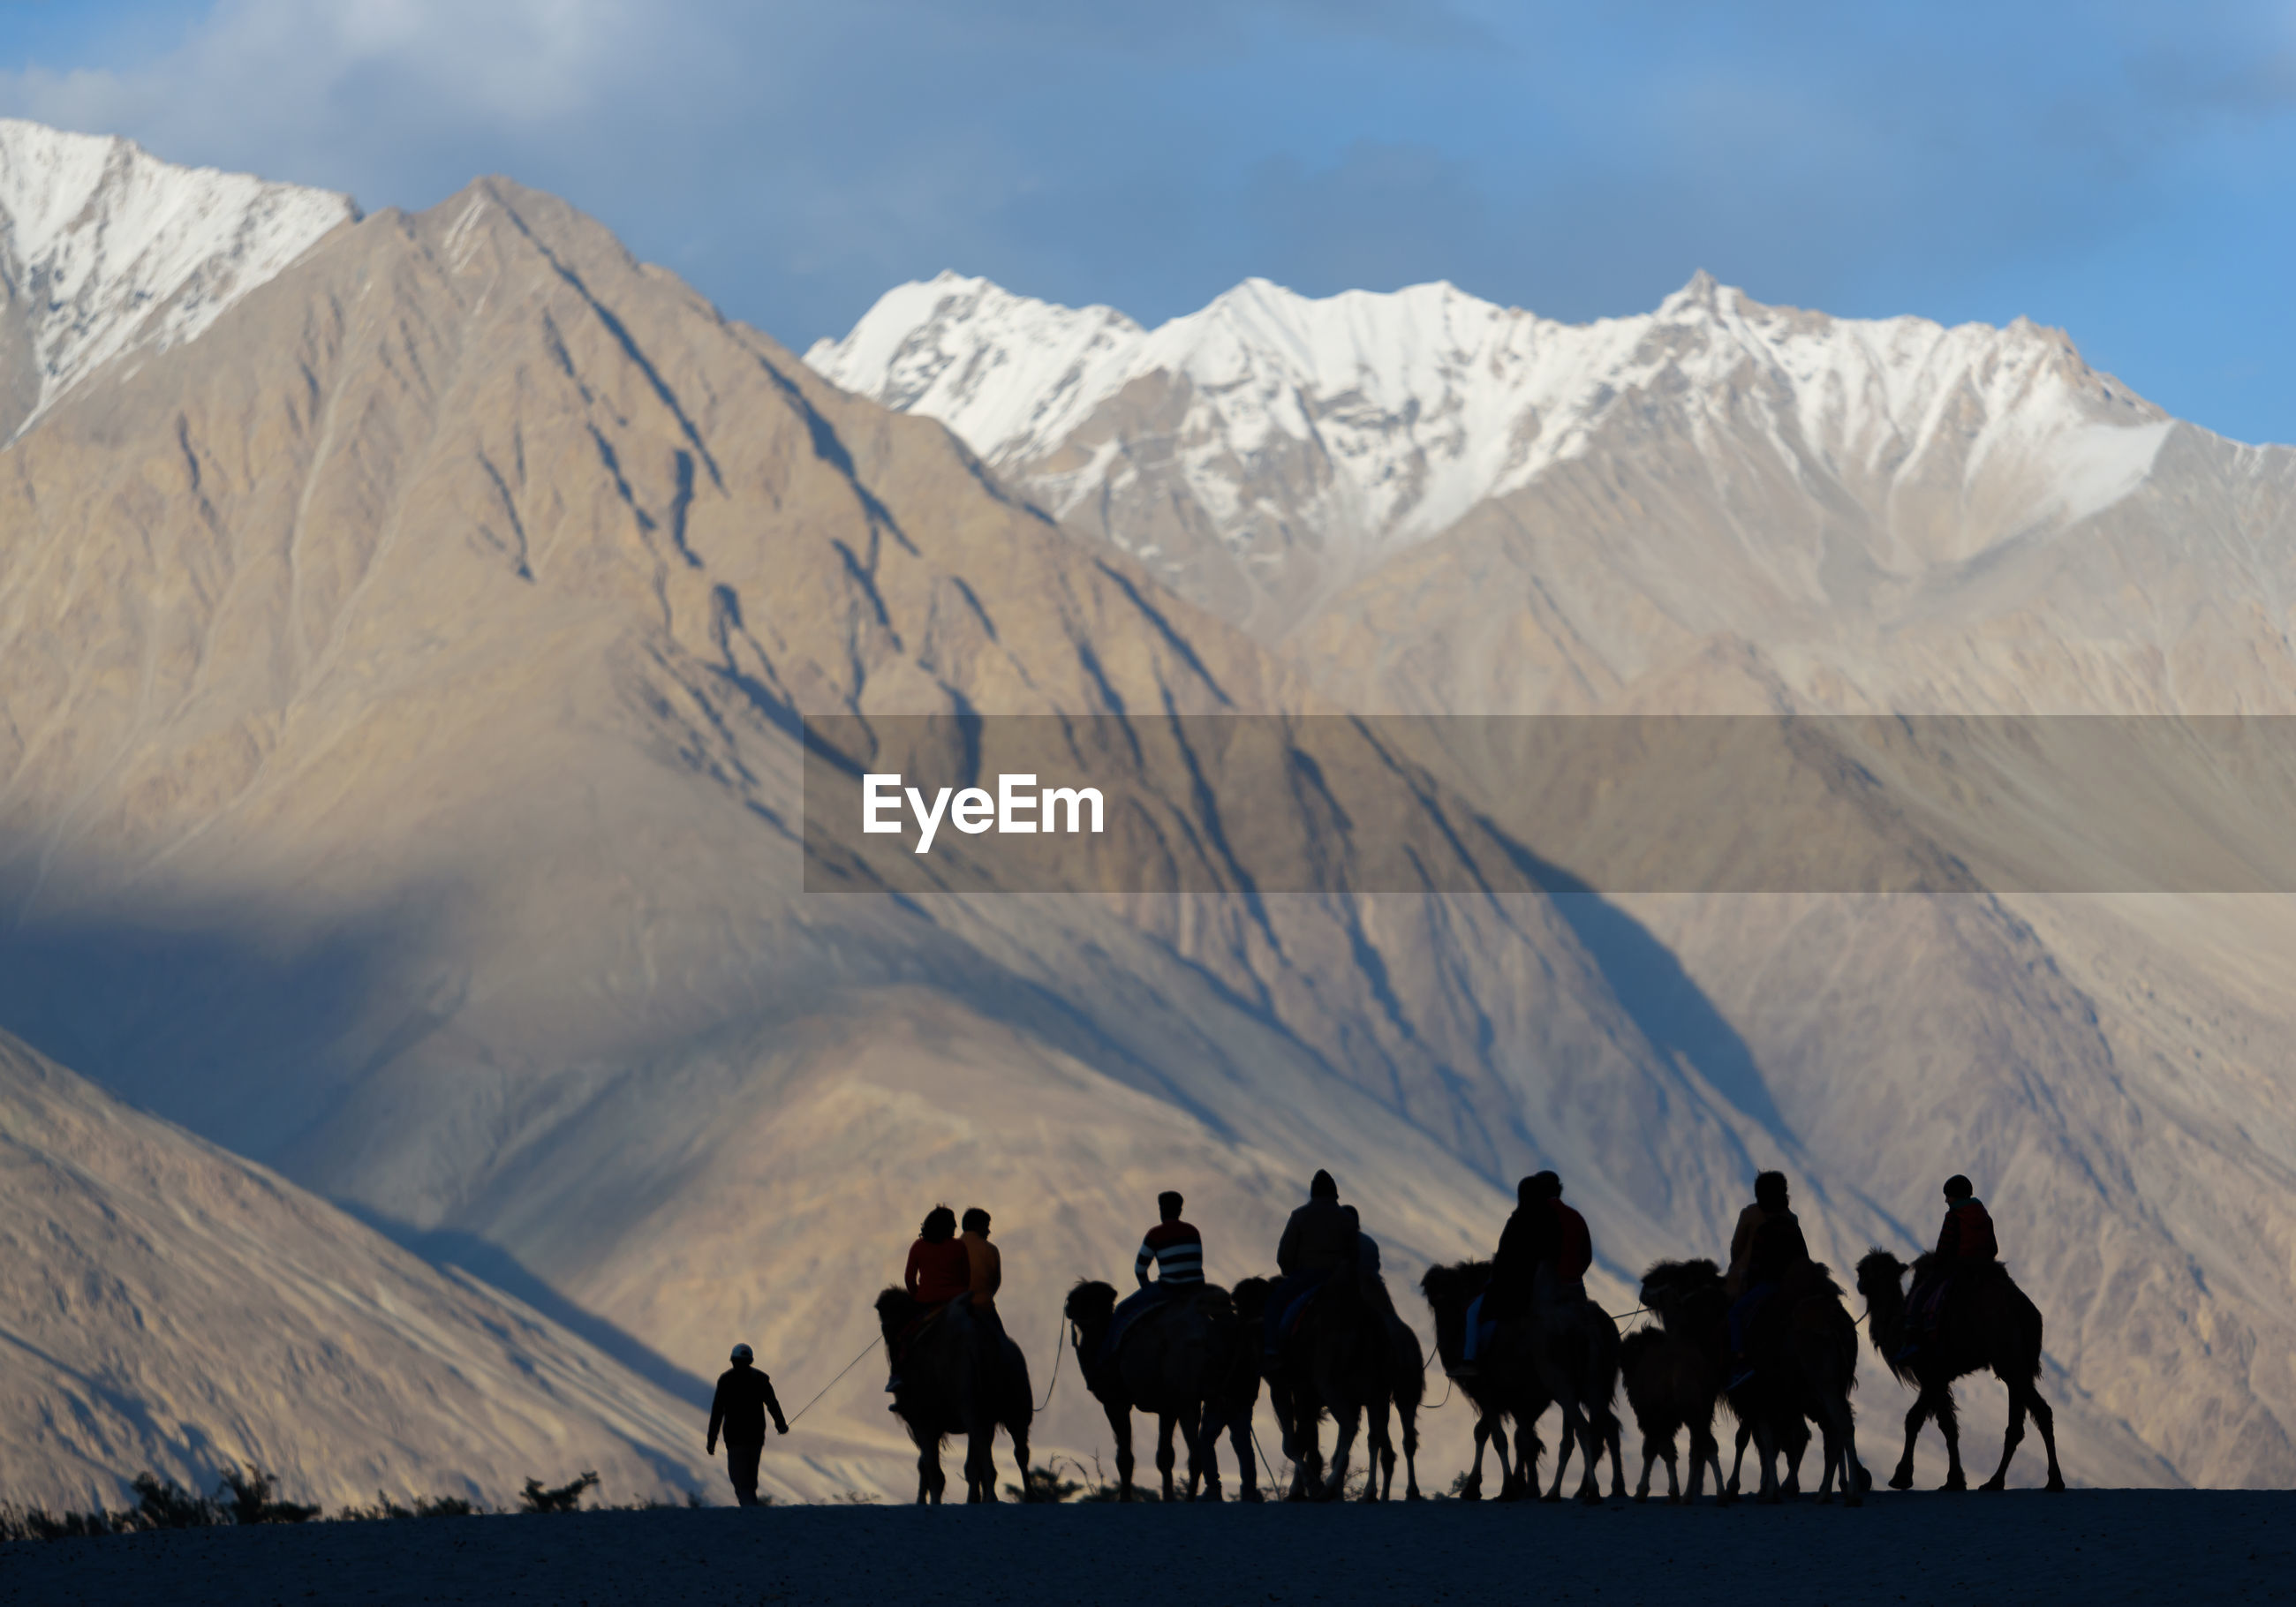 Group of people riding camel on mountain